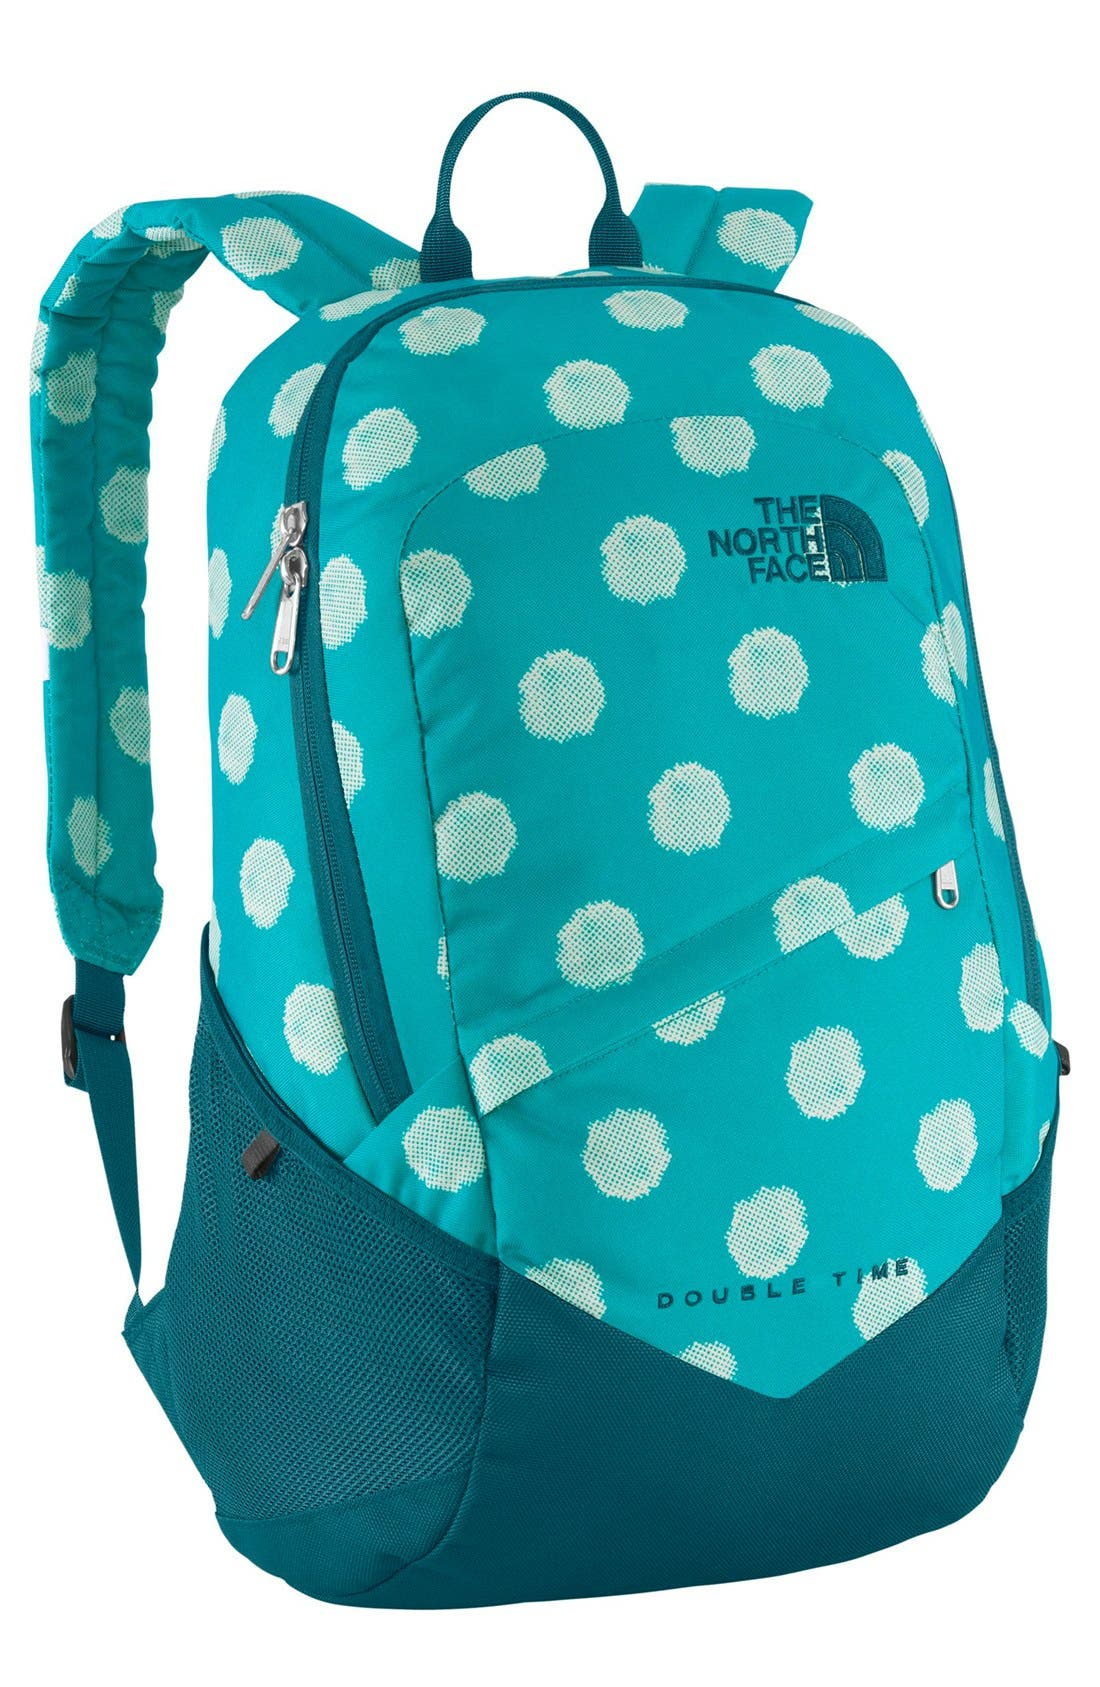 'Double Time' Backpack,                             Main thumbnail 1, color,                             401